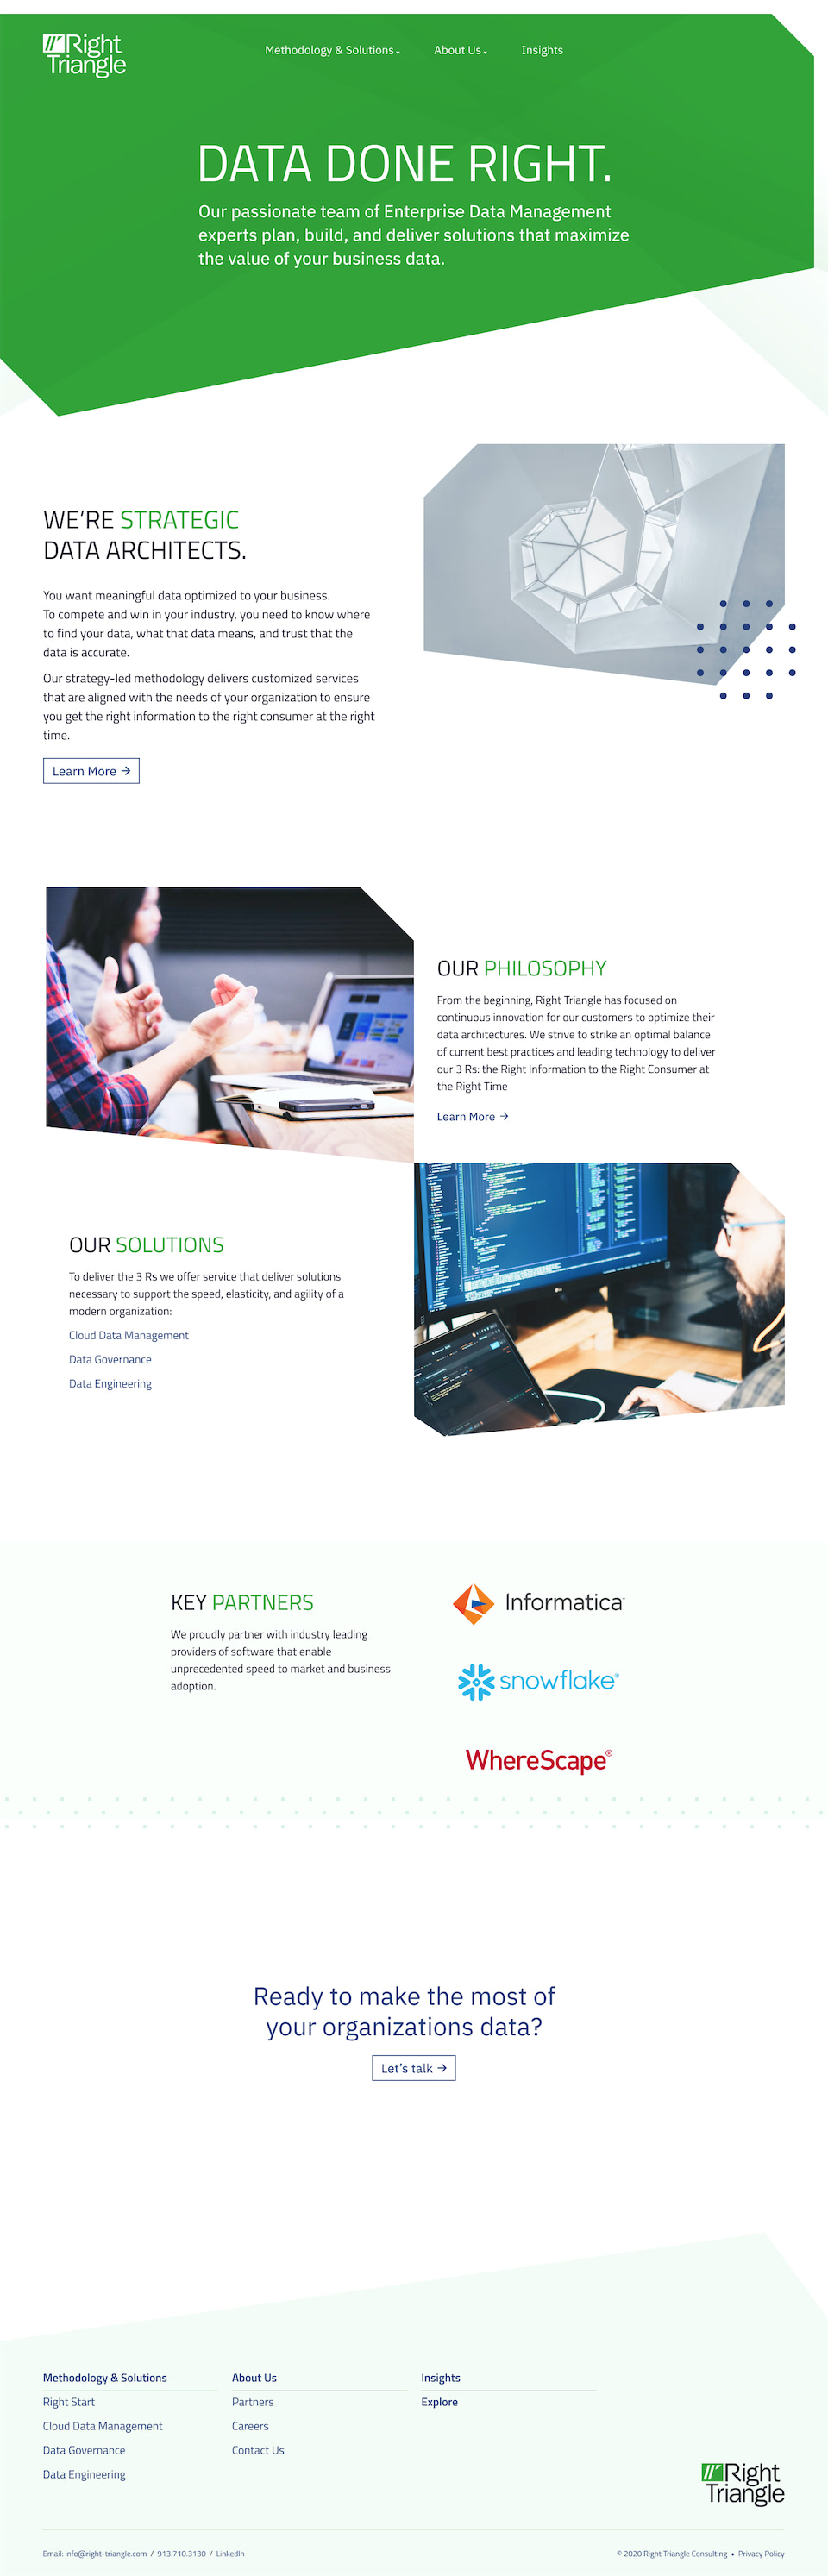 Right Triangle Website Redesign - Homepage.